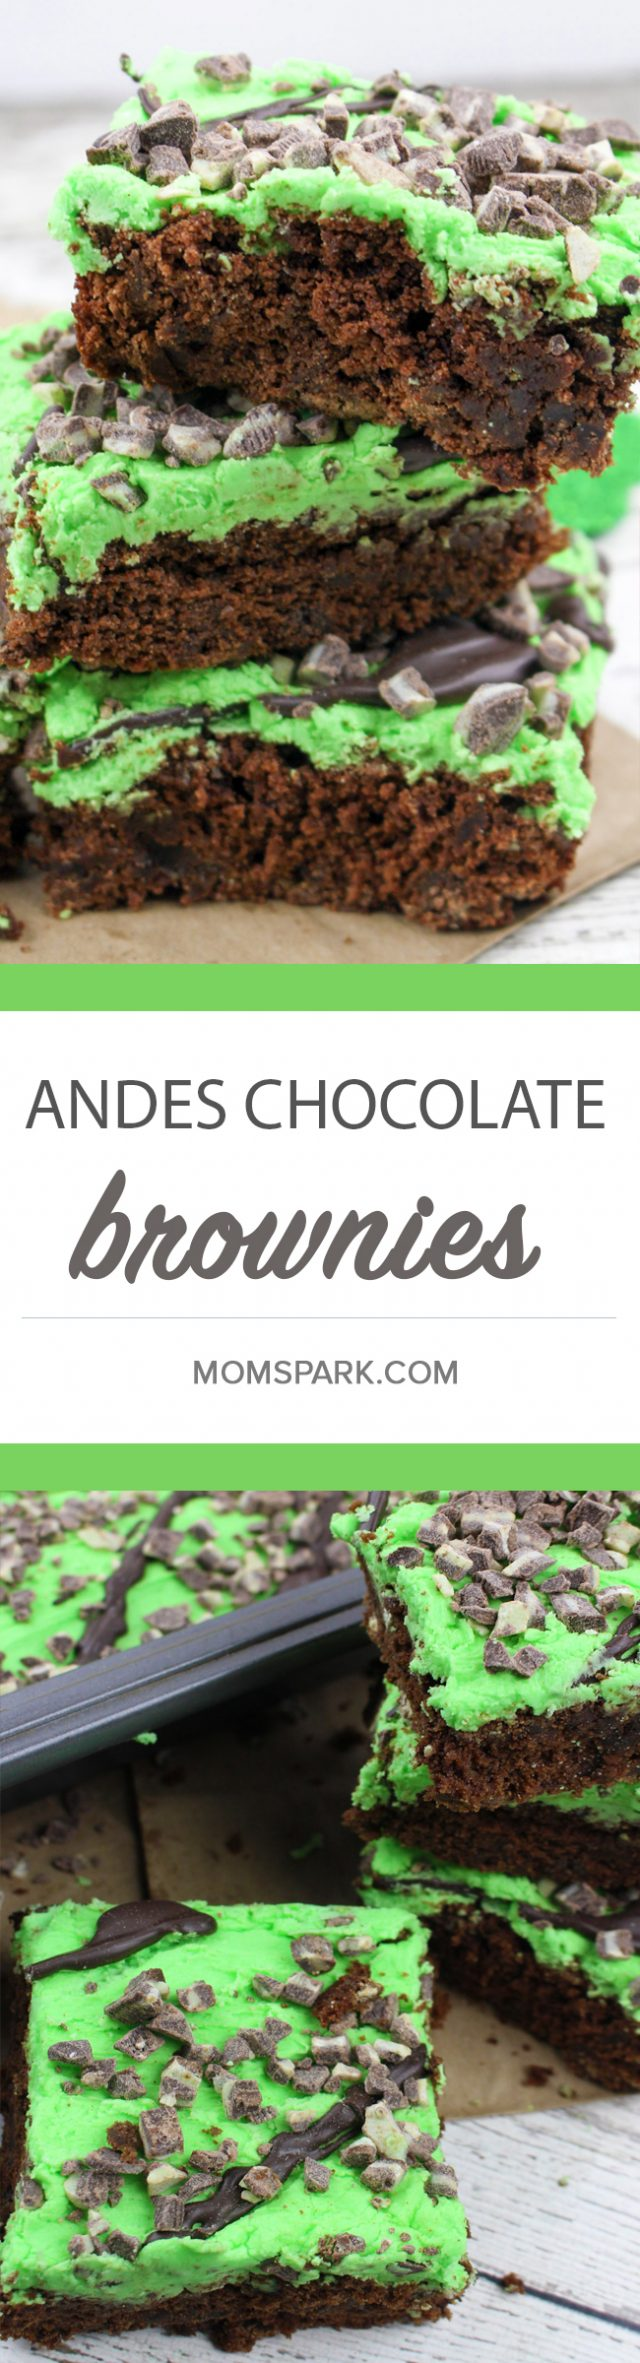 Andes Chocolate Peppermint Brownies Recipe